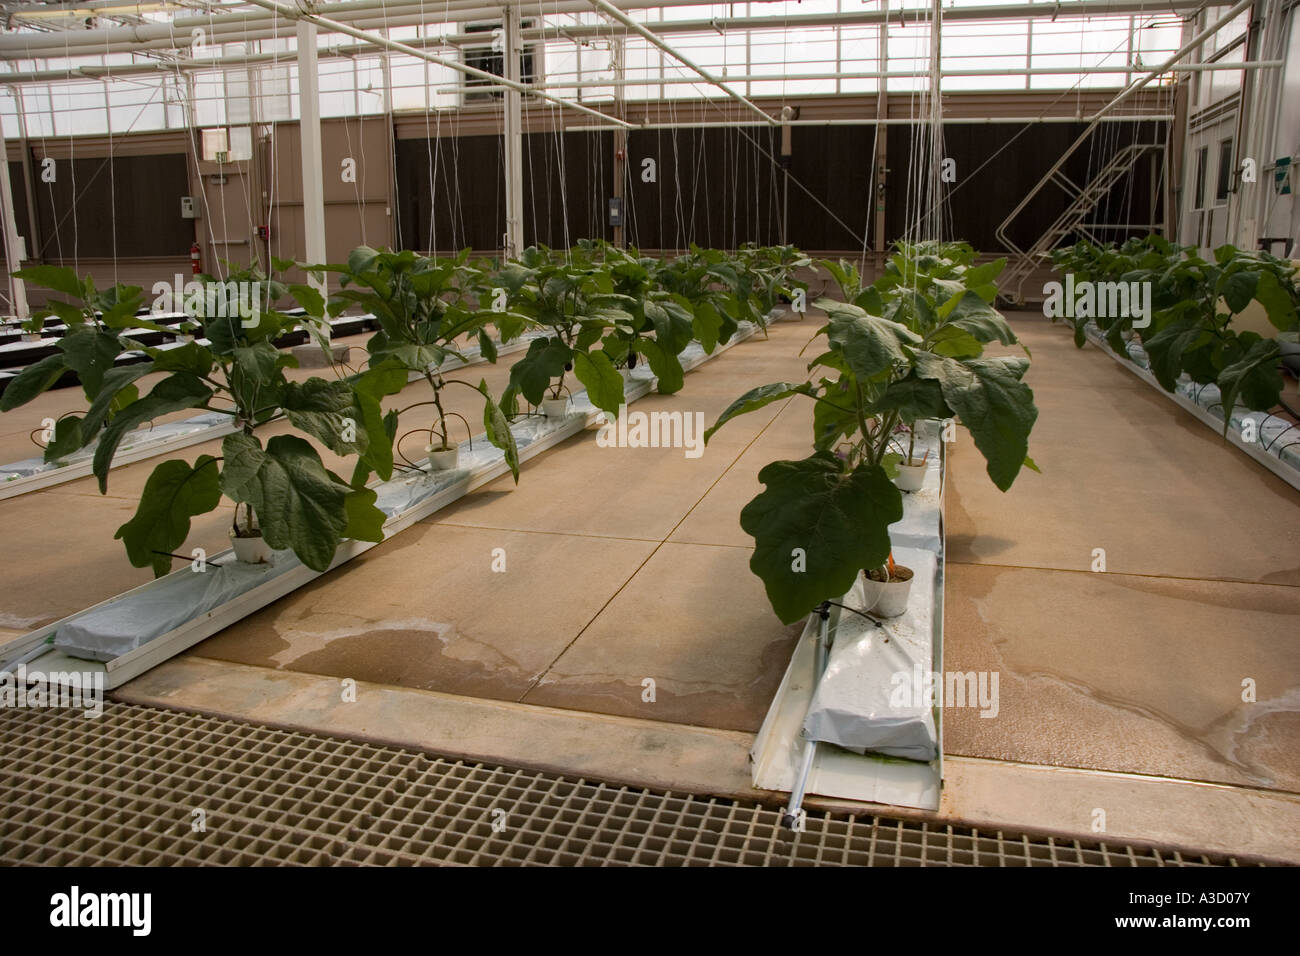 Hydroponics Farming Fruit and Vegetables in indoor Greenhouse on ...